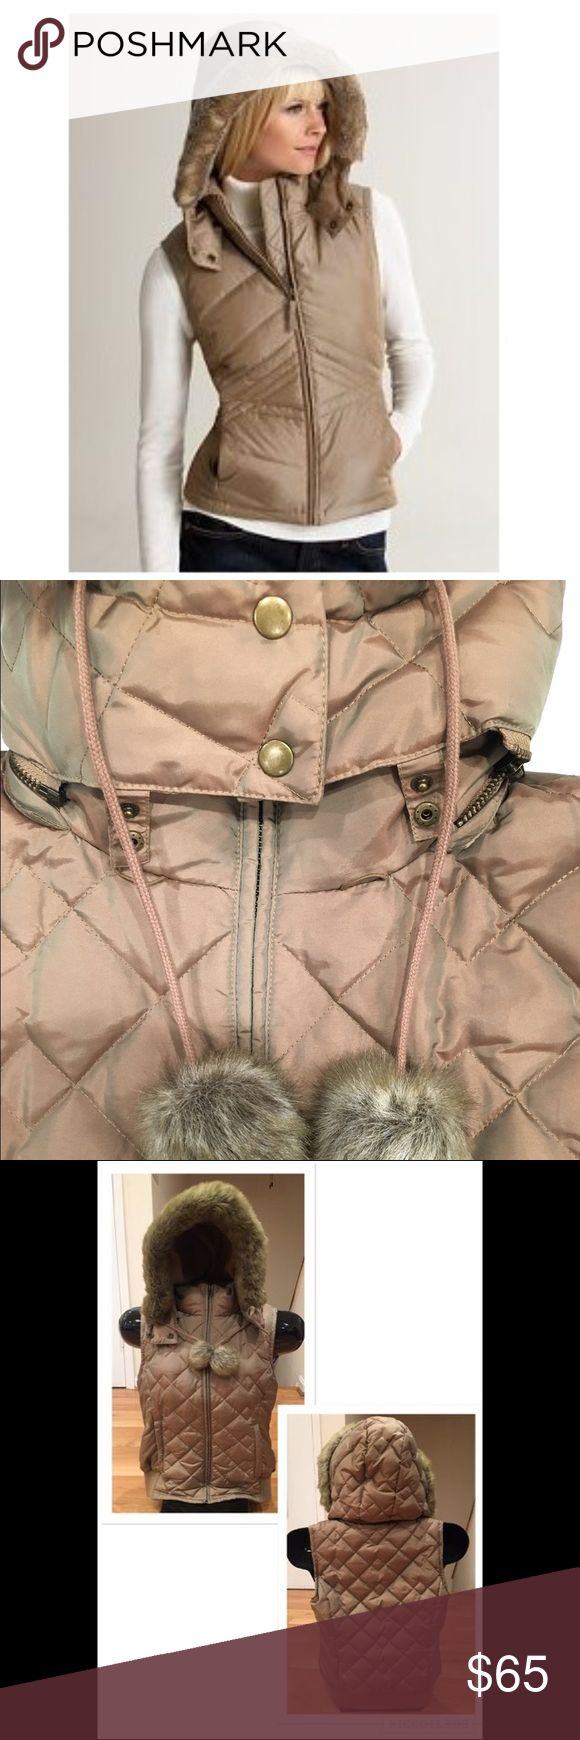 Ann Taylor Loft Down-filled Vest Down-filled gold metallic vest with detachable hood by Ann Taylor Loft.   EXCELLENT condition and will easily become a favorite purchase. This vest has a beautiful gold metallic sheen! There a just a very slight bit of piling on the inside, none on the outside. Otherwise, there are NO flaws. Hood is detachable. Fur in new condition! Super warm and on trend! Ann Taylor Jackets & Coats Vests